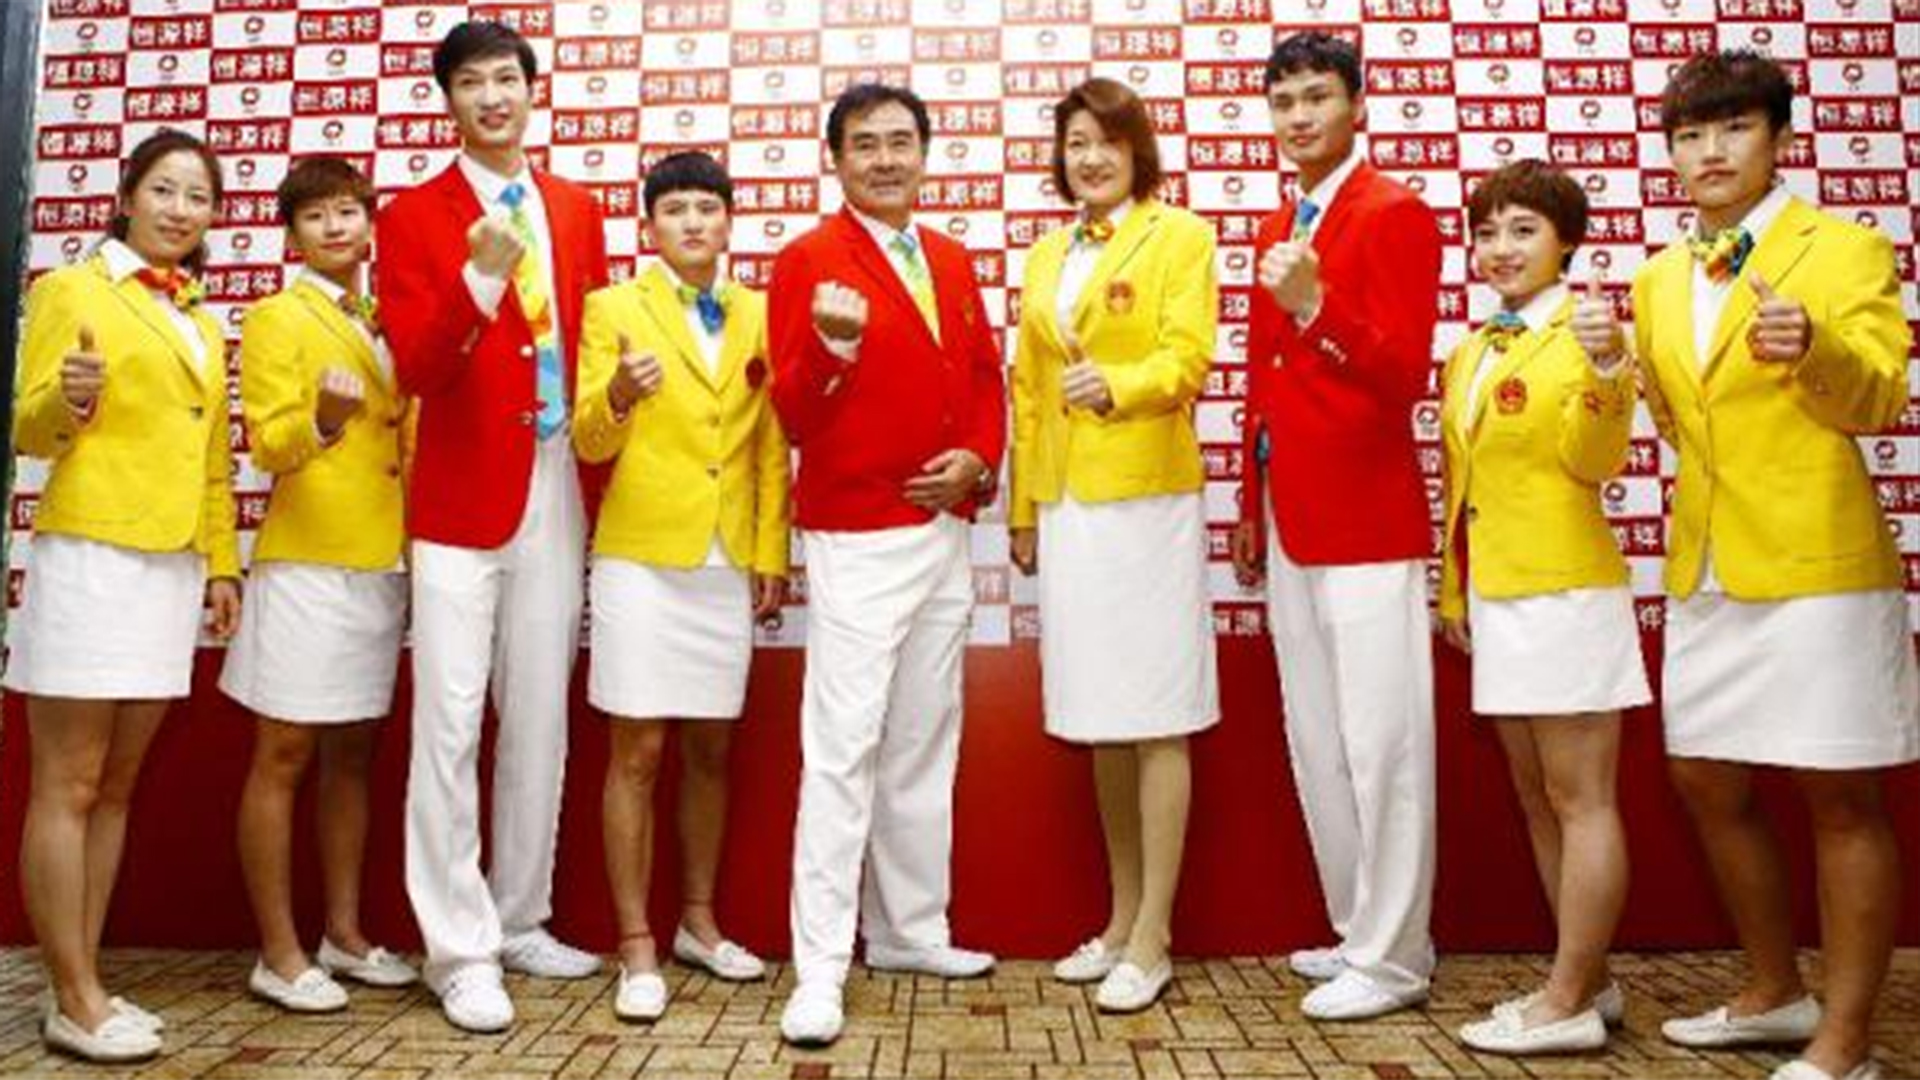 e6a5091d80e09 These Chinese Olympic uniforms have people seeing red (and  fried egg   yellow)